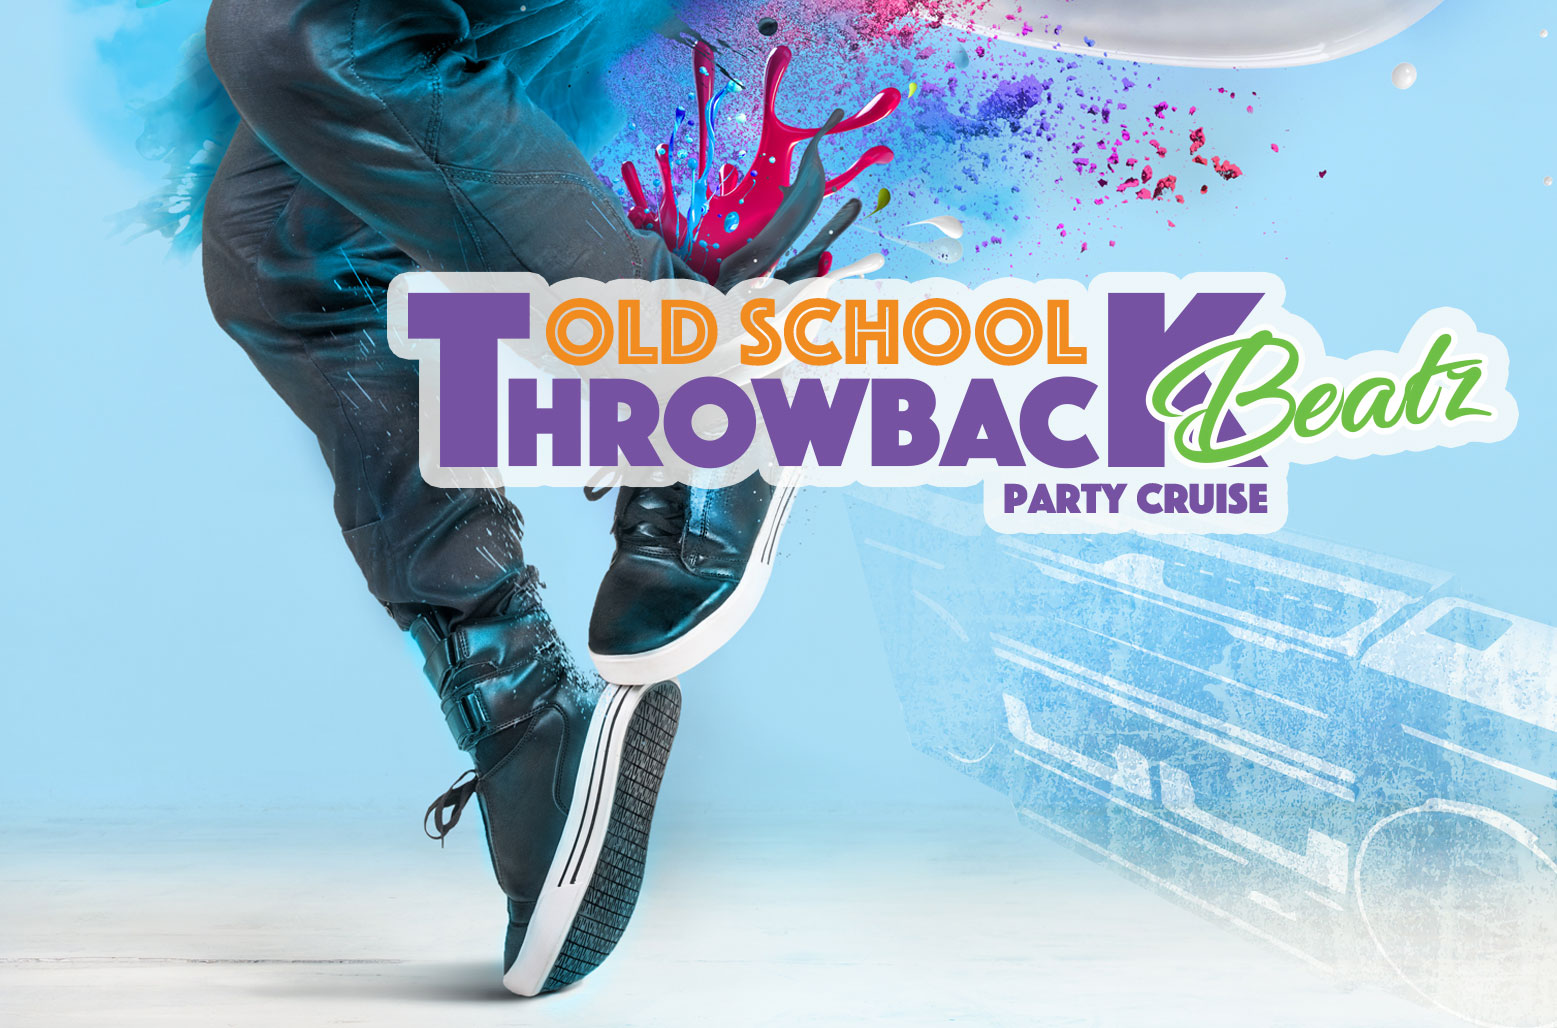 Old School Throwback Beatz Party Cruise